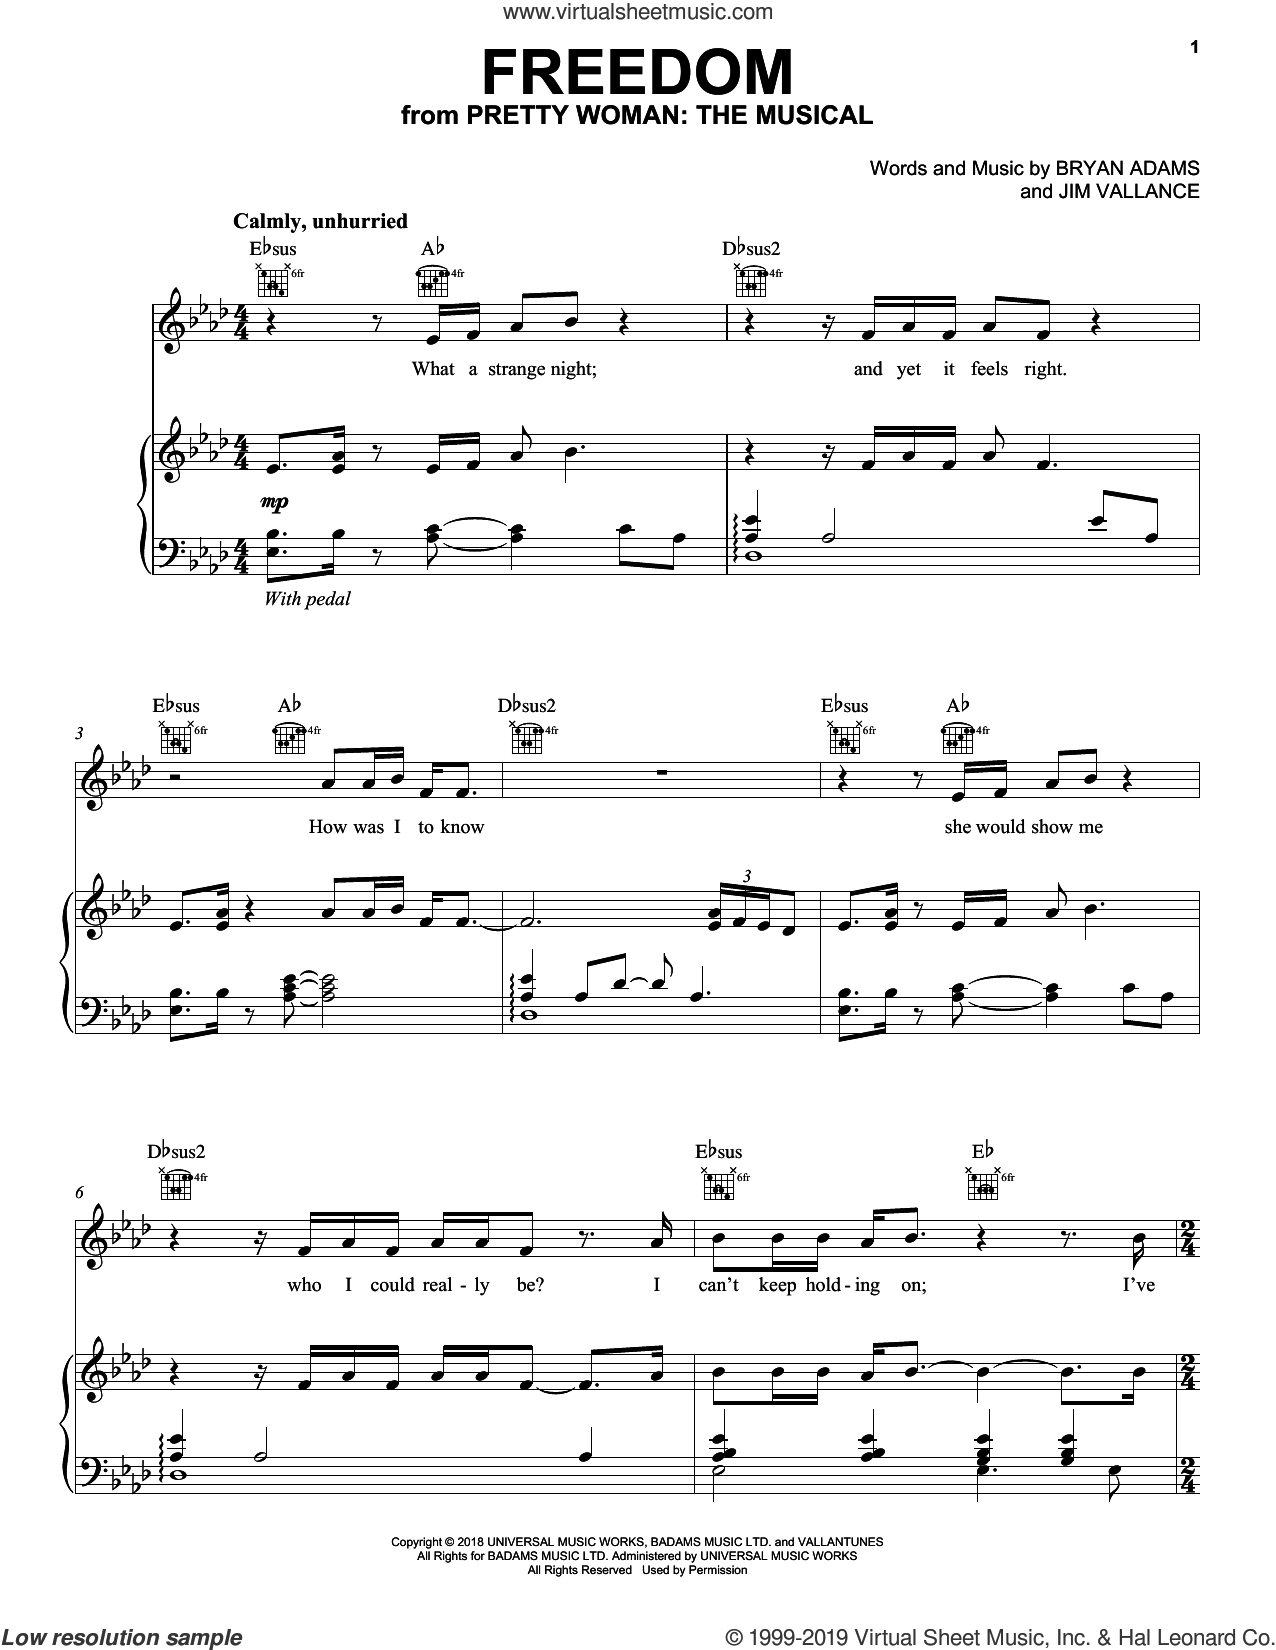 Freedom (from Pretty Woman: The Musical) sheet music for voice, piano or guitar by Bryan Adams & Jim Vallance, intermediate skill level